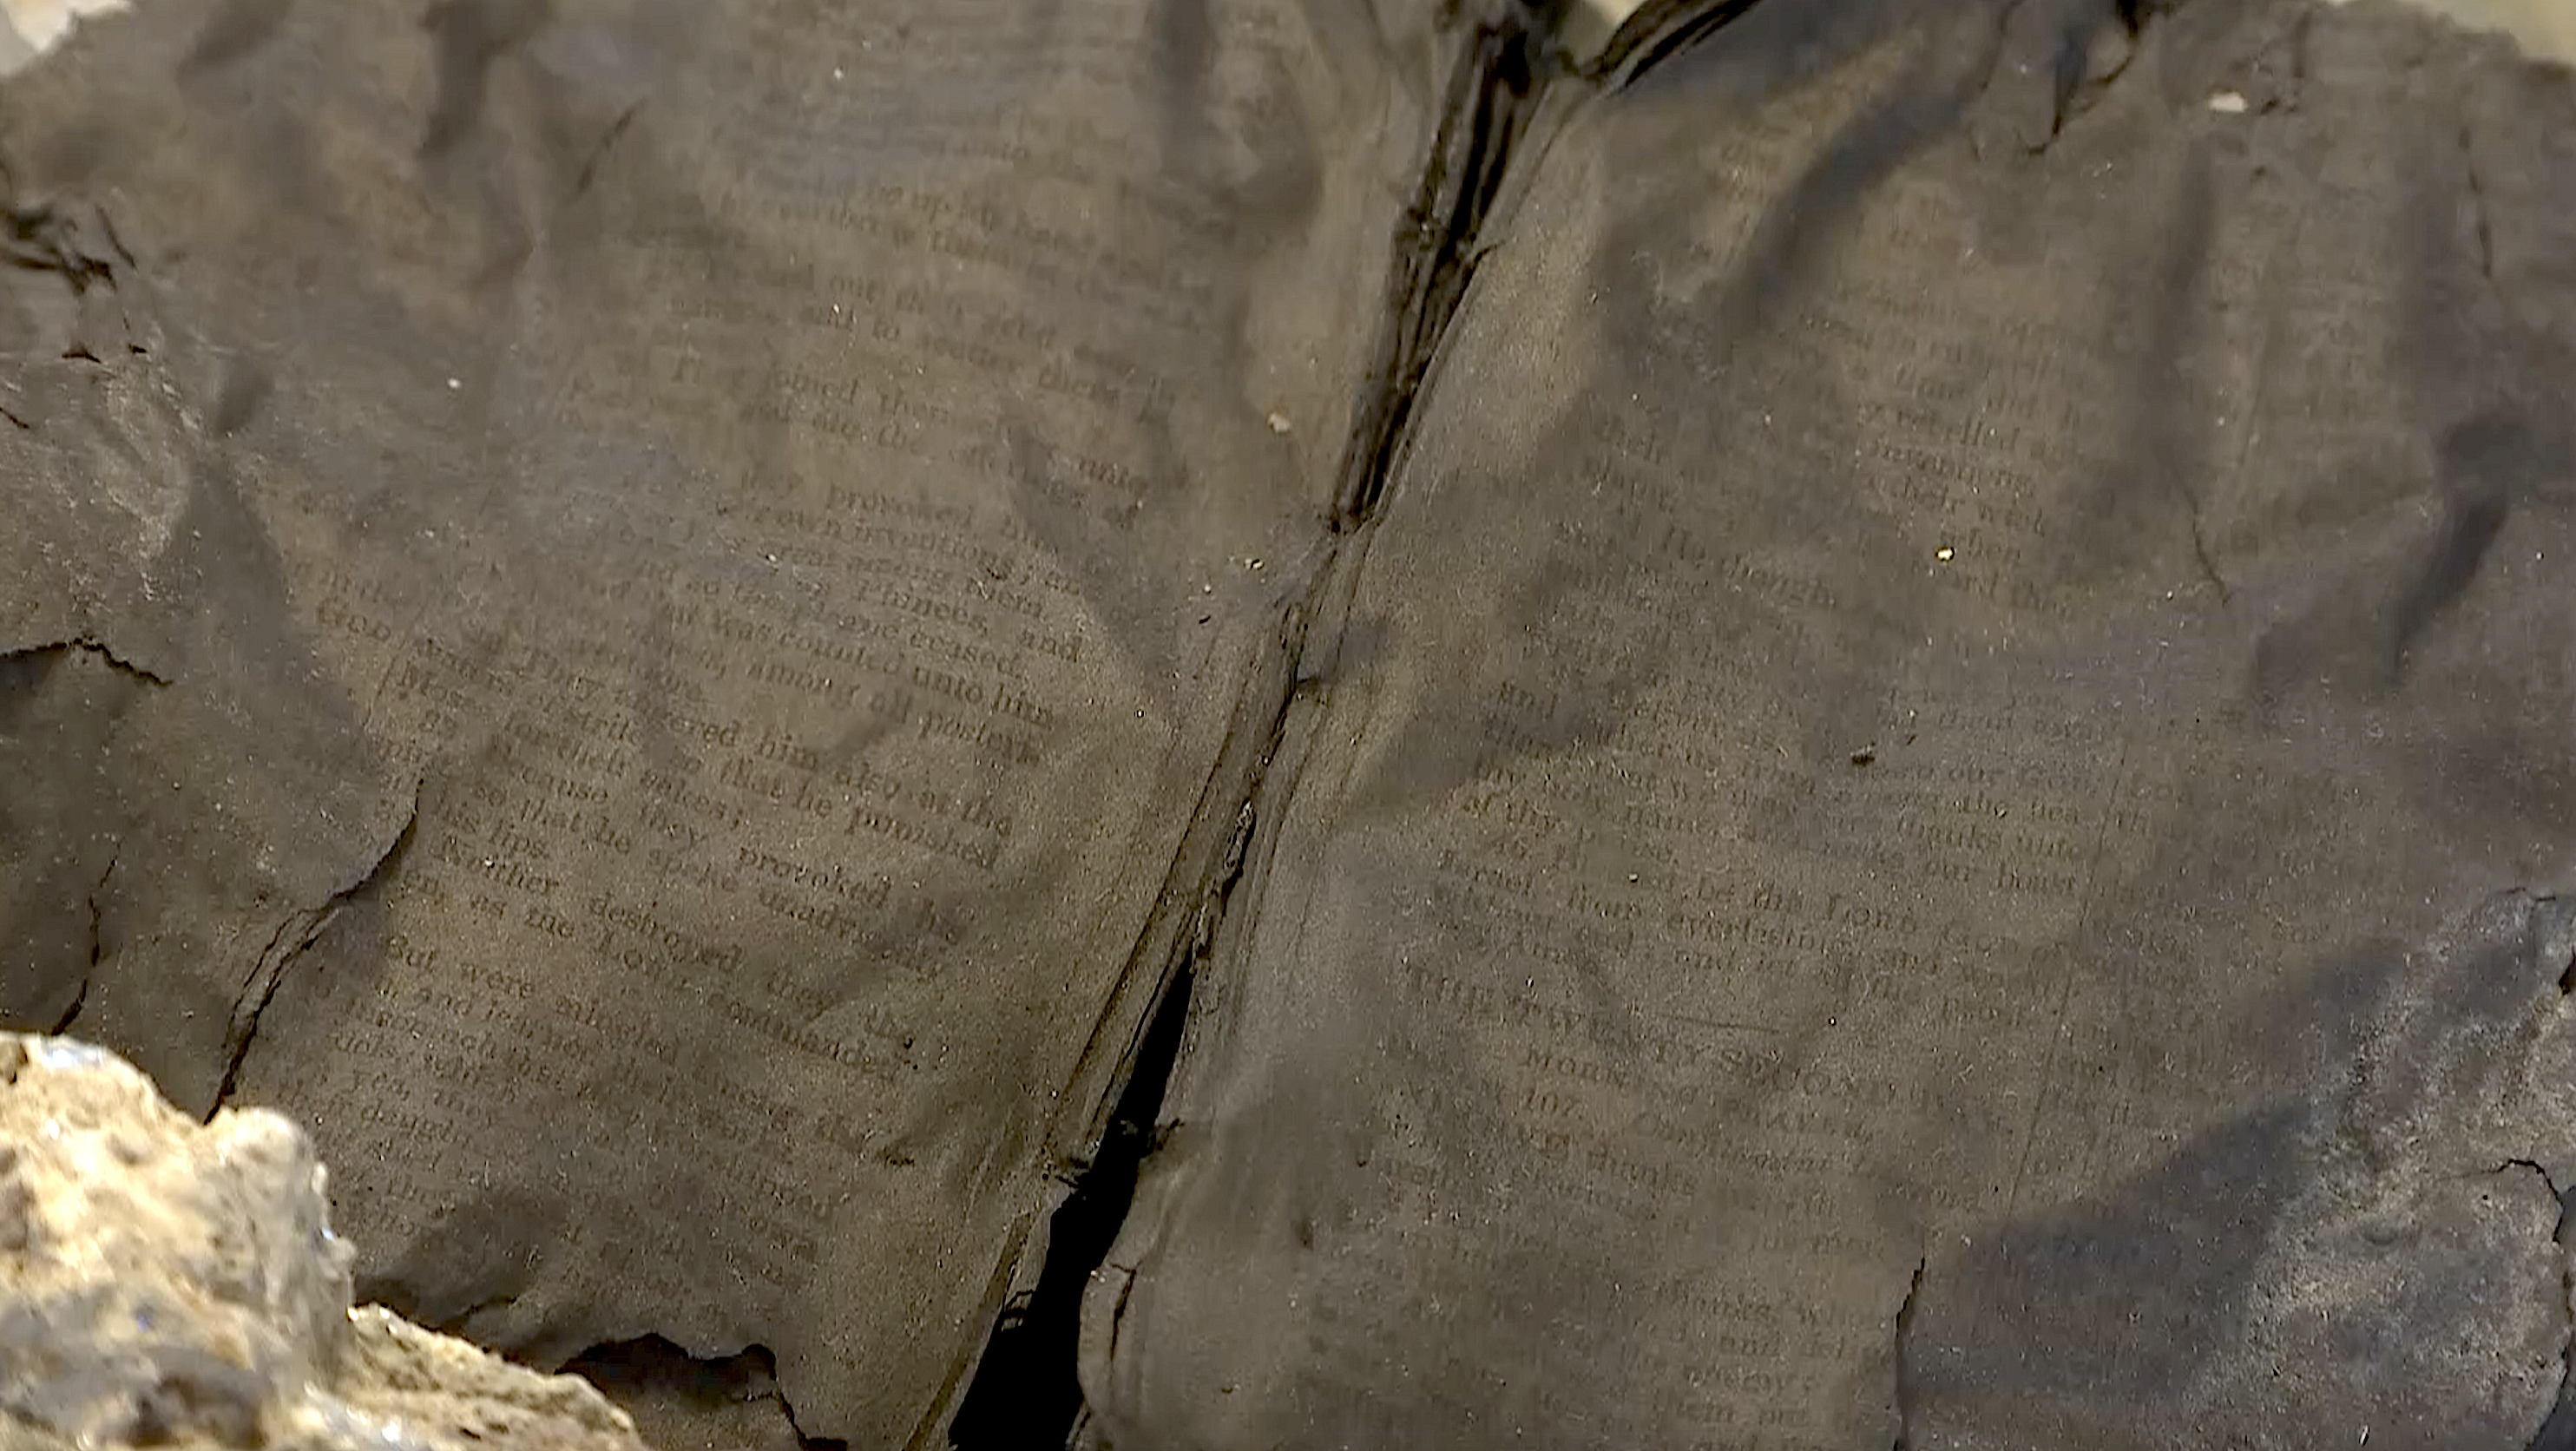 Bible found opened to Psalm 106 and 107 one of few objects to survive deadliest fire in US history